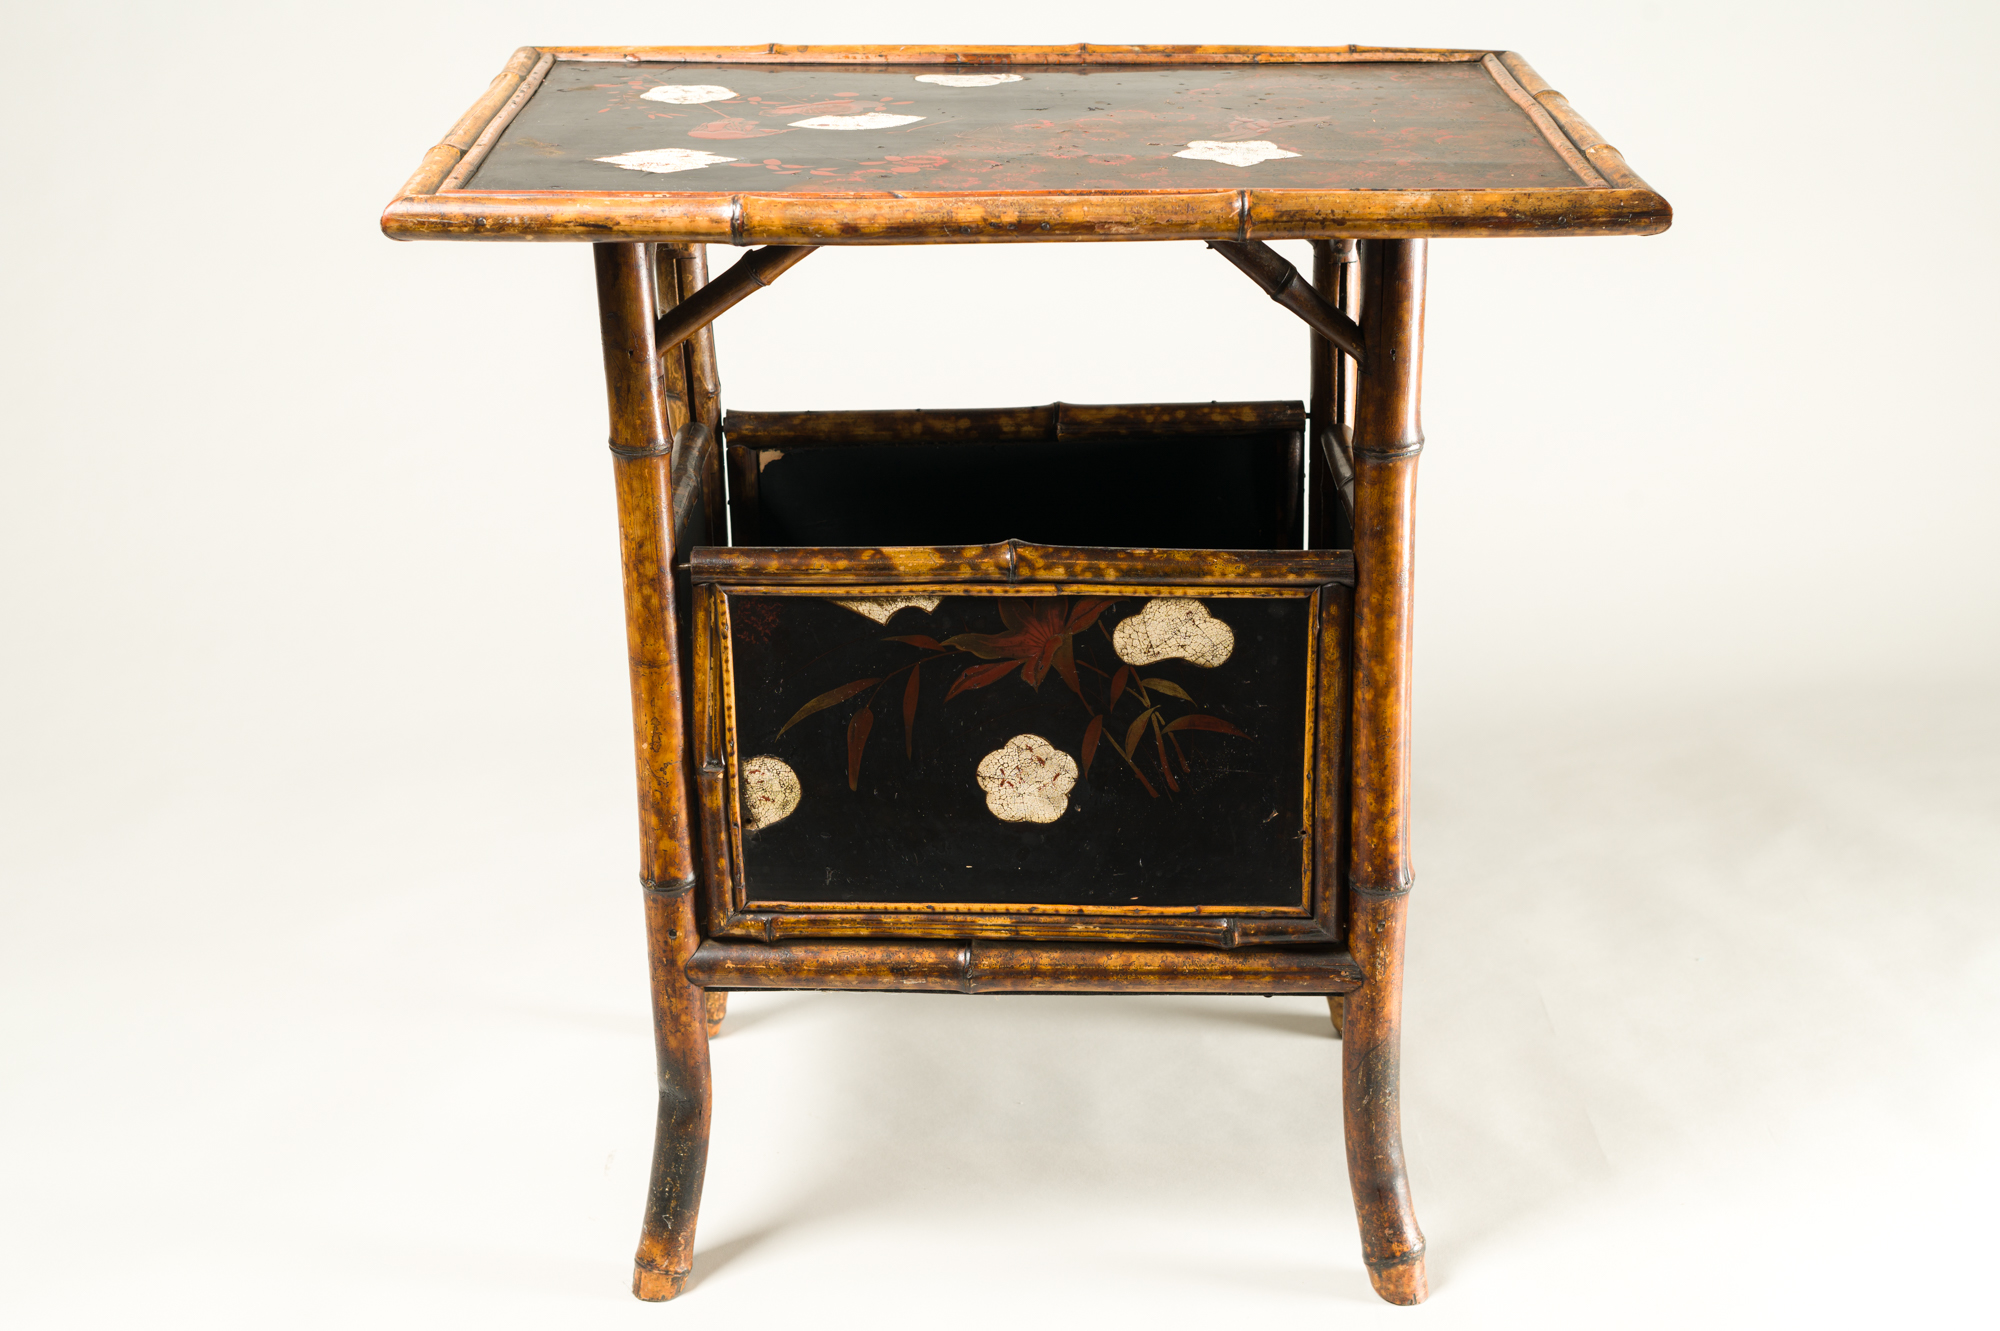 English Table with Lacquer Japanning, Eggshell Design and Bamboo